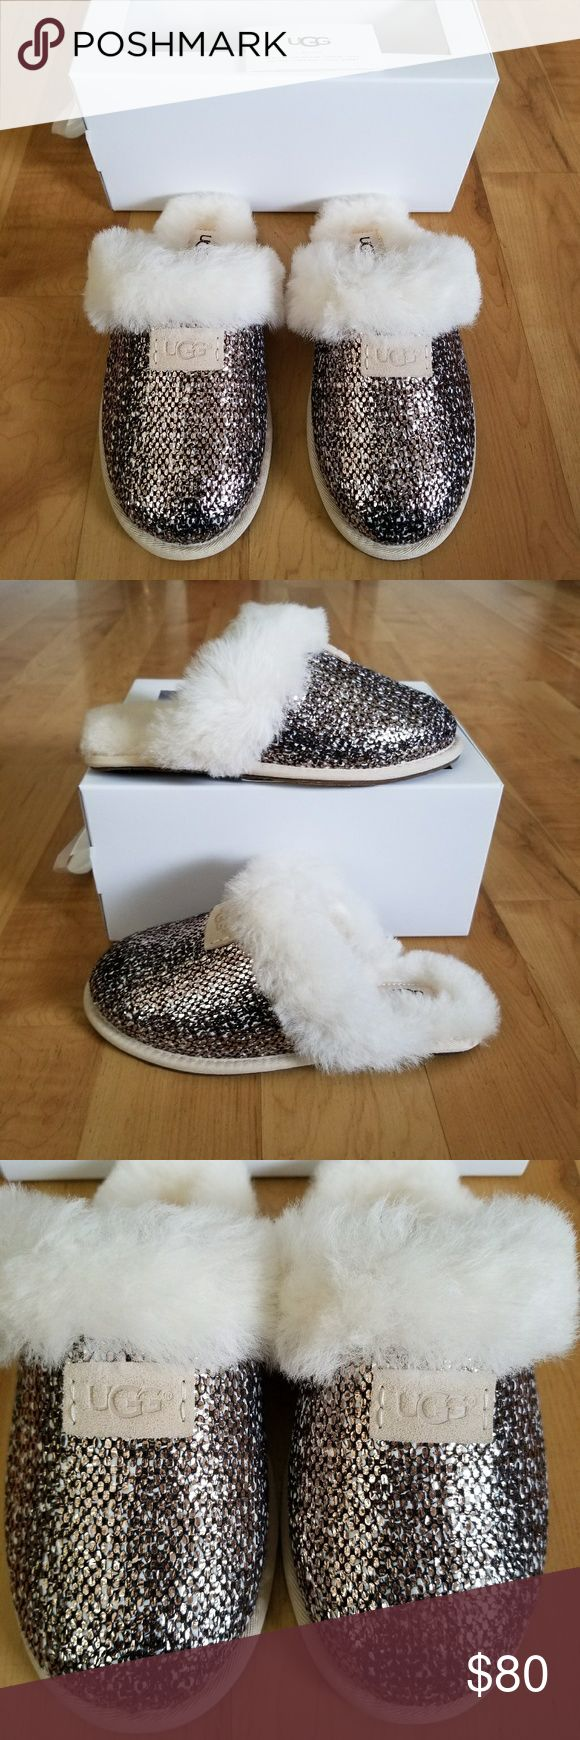 UGG Slippers NEW UGG Scuffette II Frill Slippers  Size 6 in Women.  Metallic tweed and sheepskin collar.  Bronze color. Sheepskin insole and footbed.  Rubber outsole for outdoor and indoor wear.  They have the hologram as shown in the picture to prove authenticity.  Feel free to ask any questions (#491-2) NO TRADES  I'm open to reasonable offers. 🌷 UGG Shoes Slippers